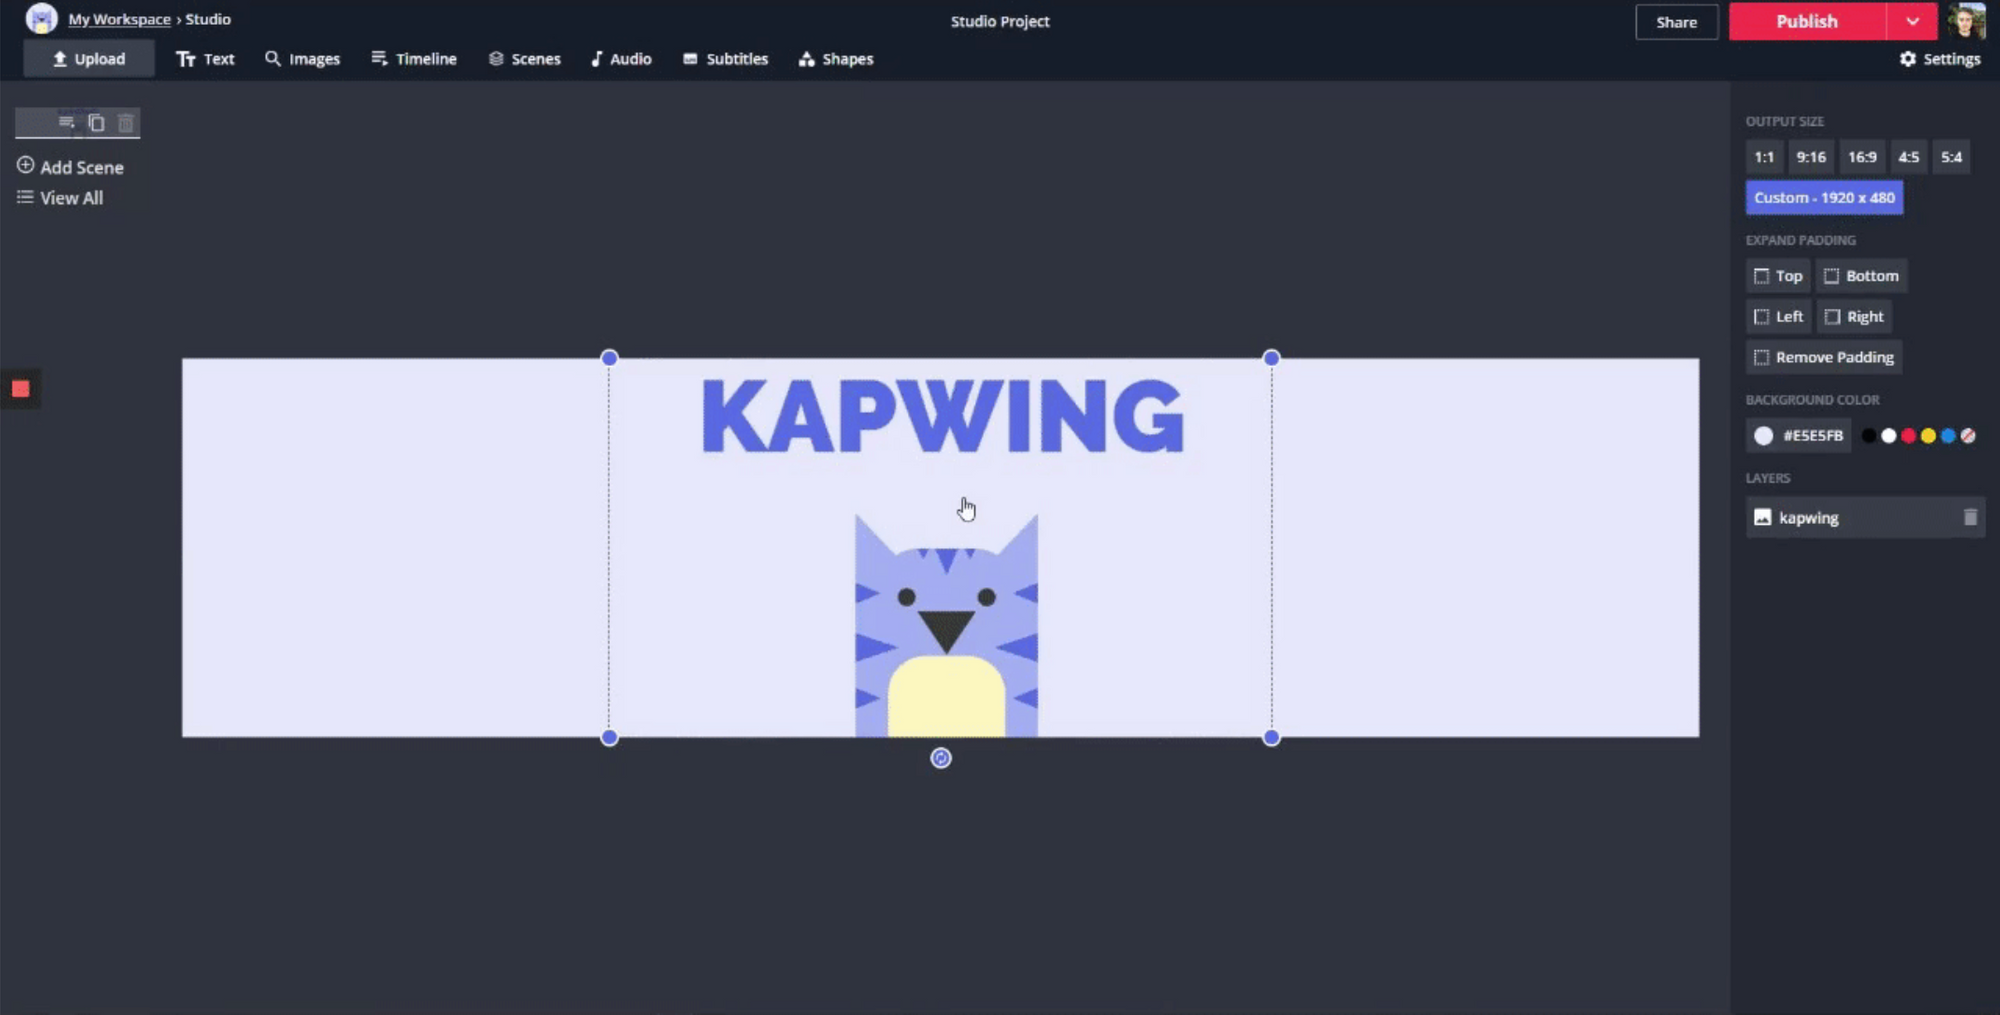 A screenshot showing how to create a background design in Kapwing.